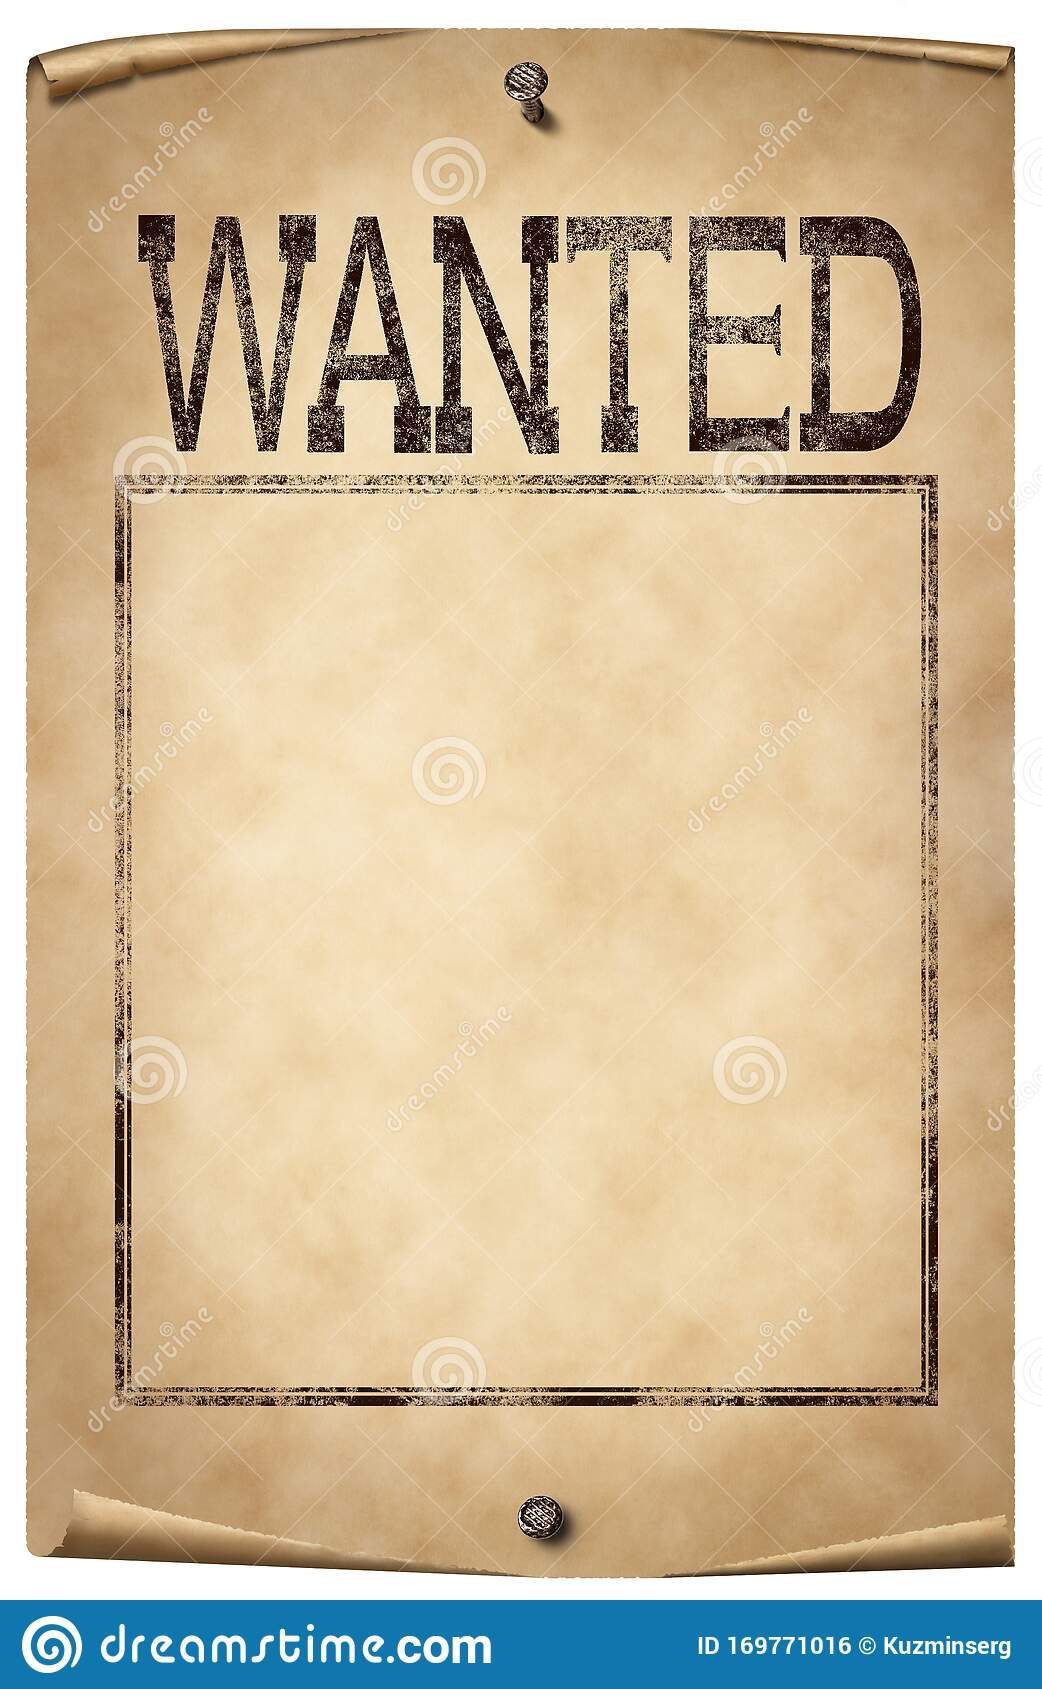 920 Blank Wanted Poster Photos Free Royalty Free Stock Photos From Dreamstime